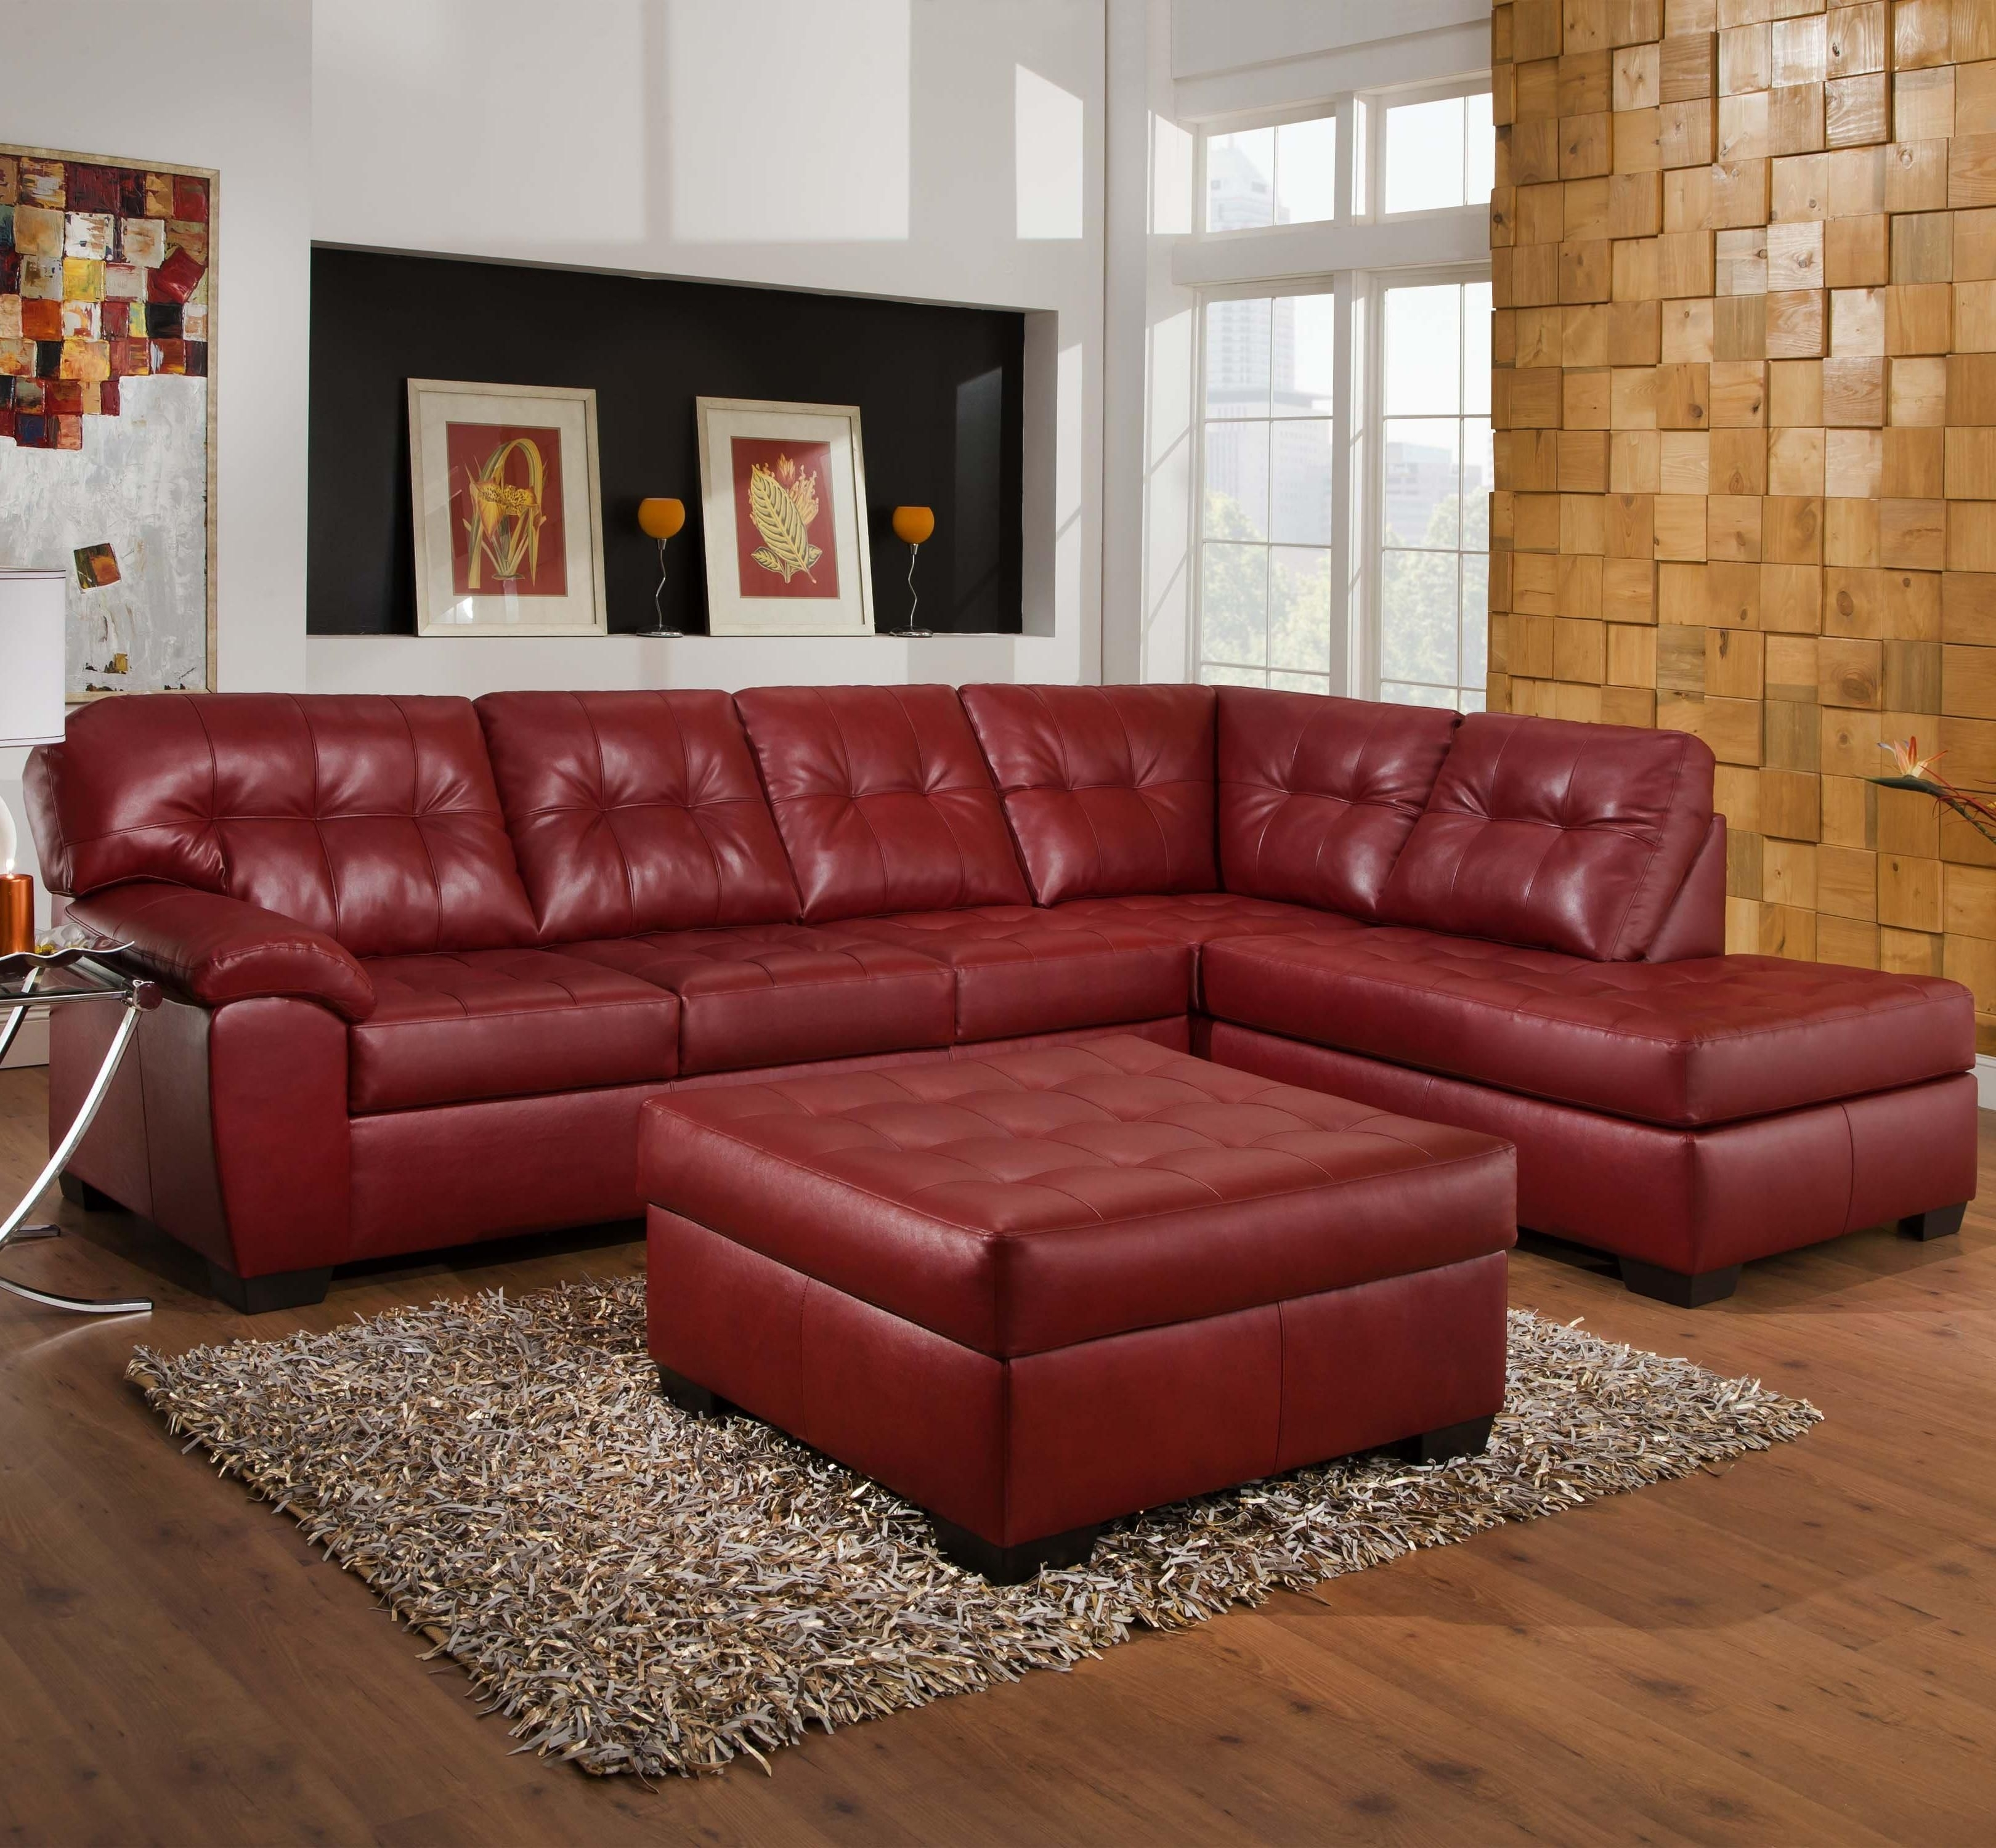 9569 2 Piece Sectional With Tufted Seats & Backsimmons With Jackson Tn Sectional Sofas (Image 2 of 10)